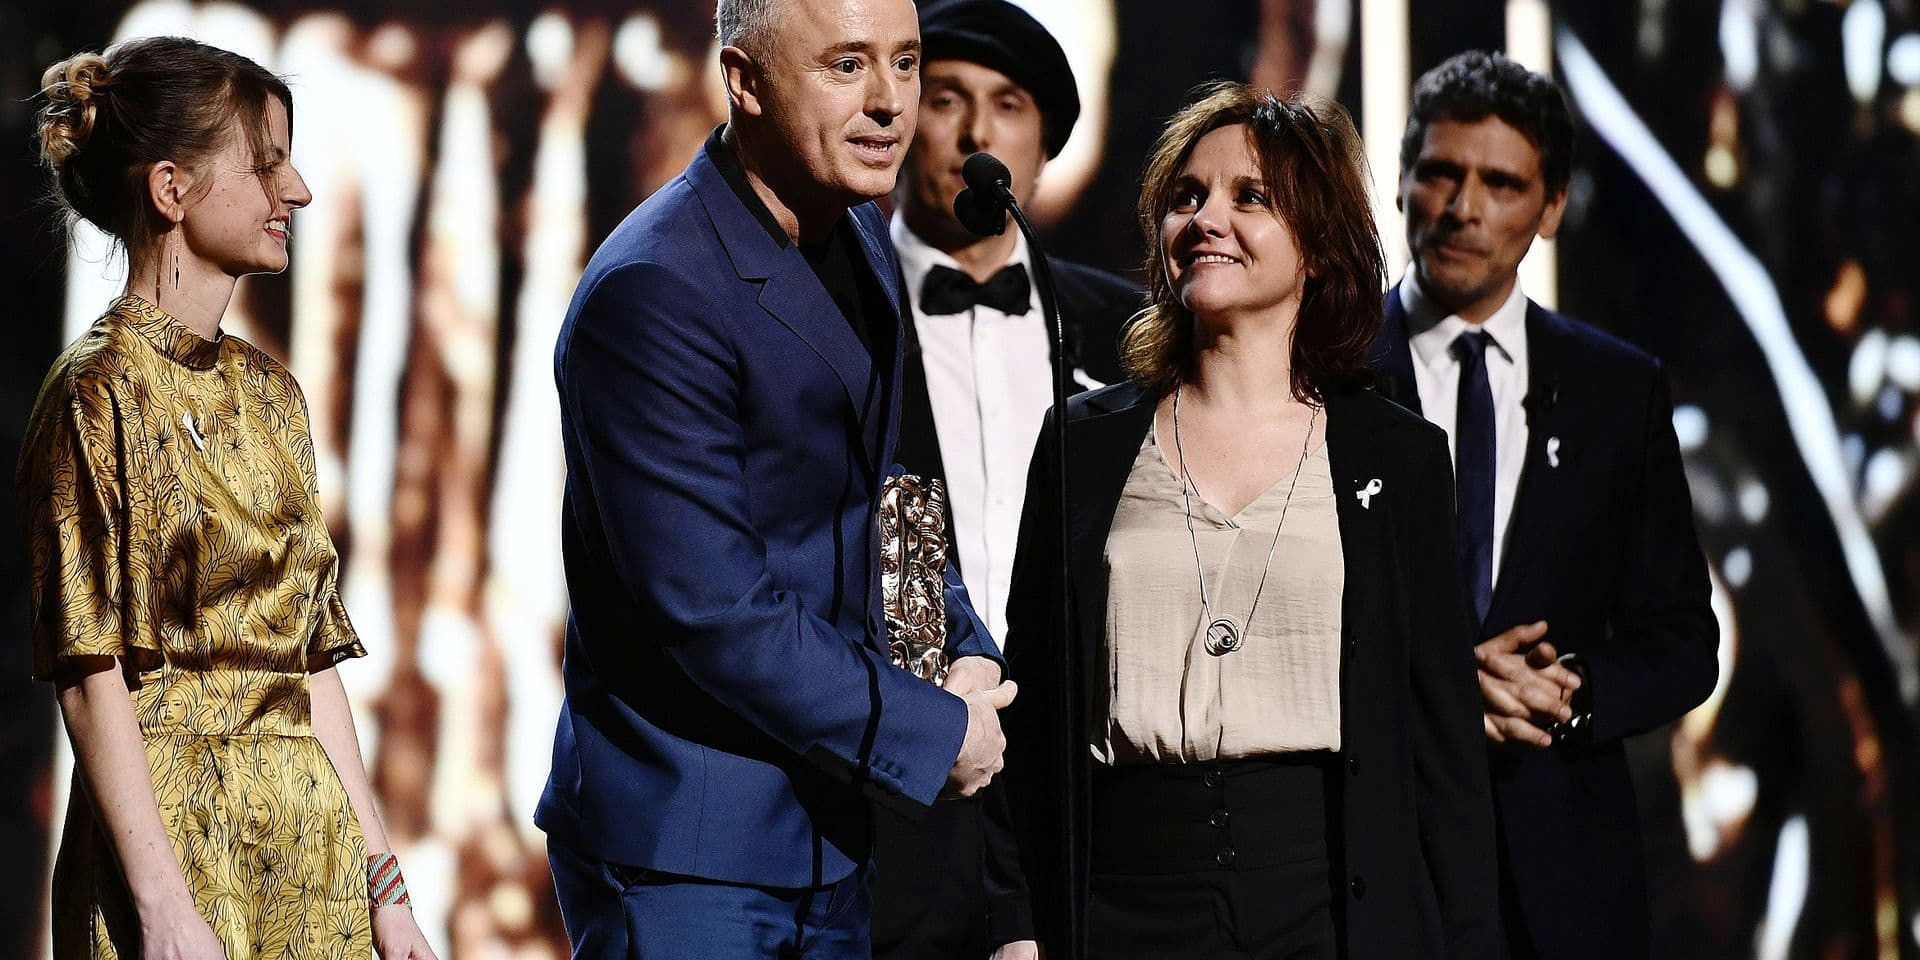 """French screenwriter and film director Robin Campillo (C) delivers a speech after winning the Best Editing award for the film """"120 battements par minute"""" (BPM-Beats Per Minute) during the 43rd edition of the Cesar Awards ceremony at the Salle Pleyel in Paris on March 2, 2018. / AFP PHOTO / Philippe LOPEZ"""